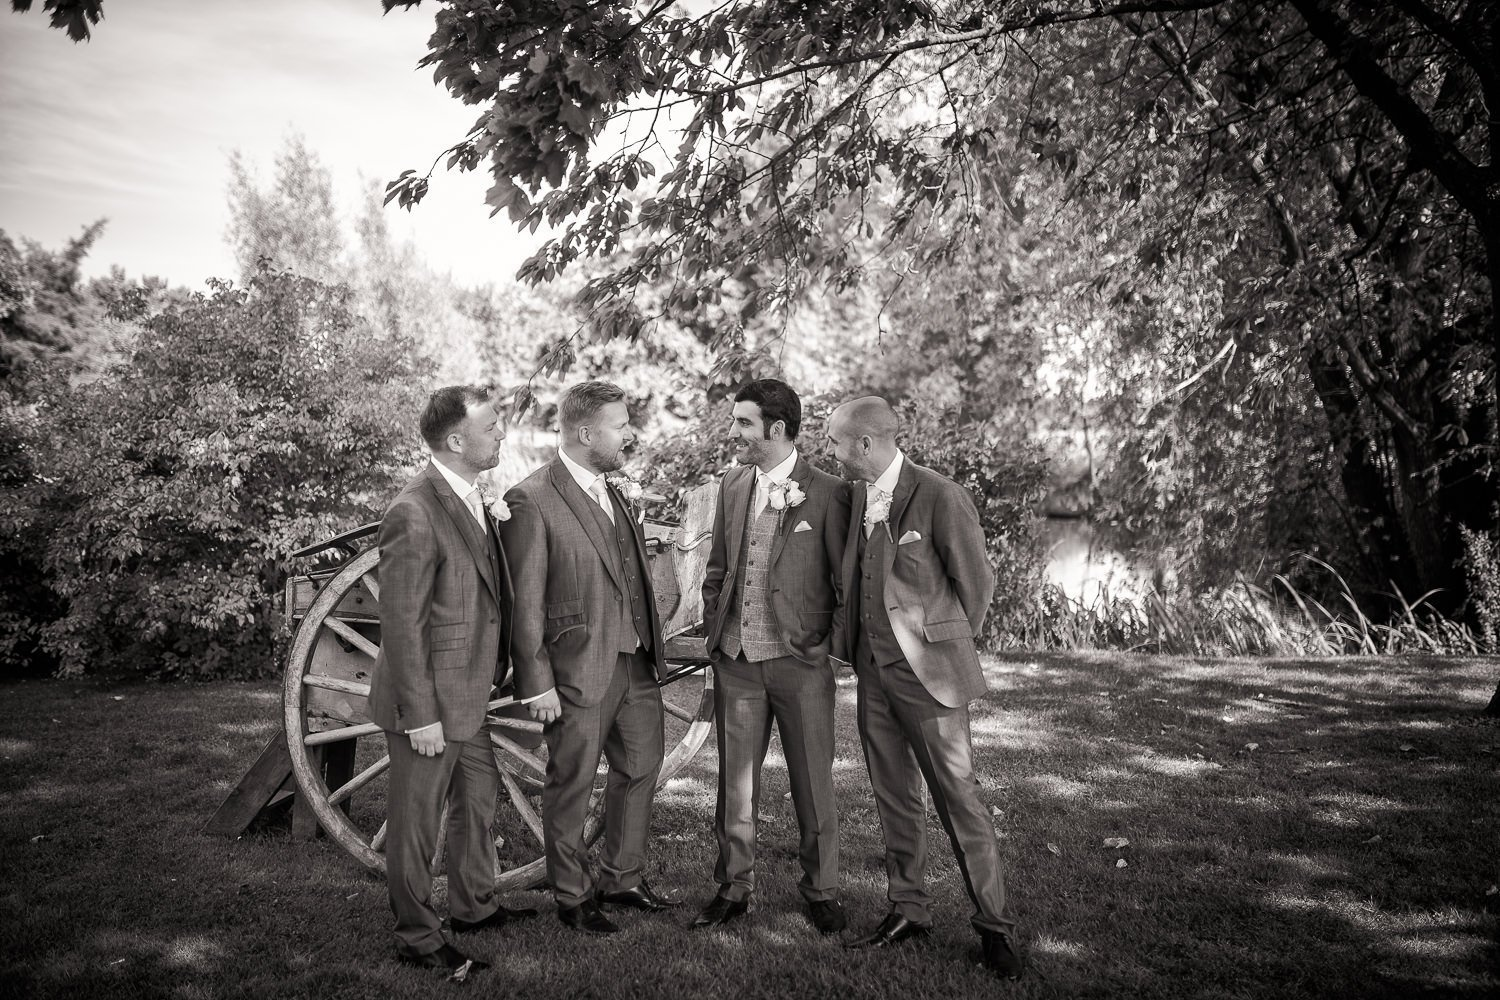 Groom and his party laughing together at Granary Barns Wedding, in black and white